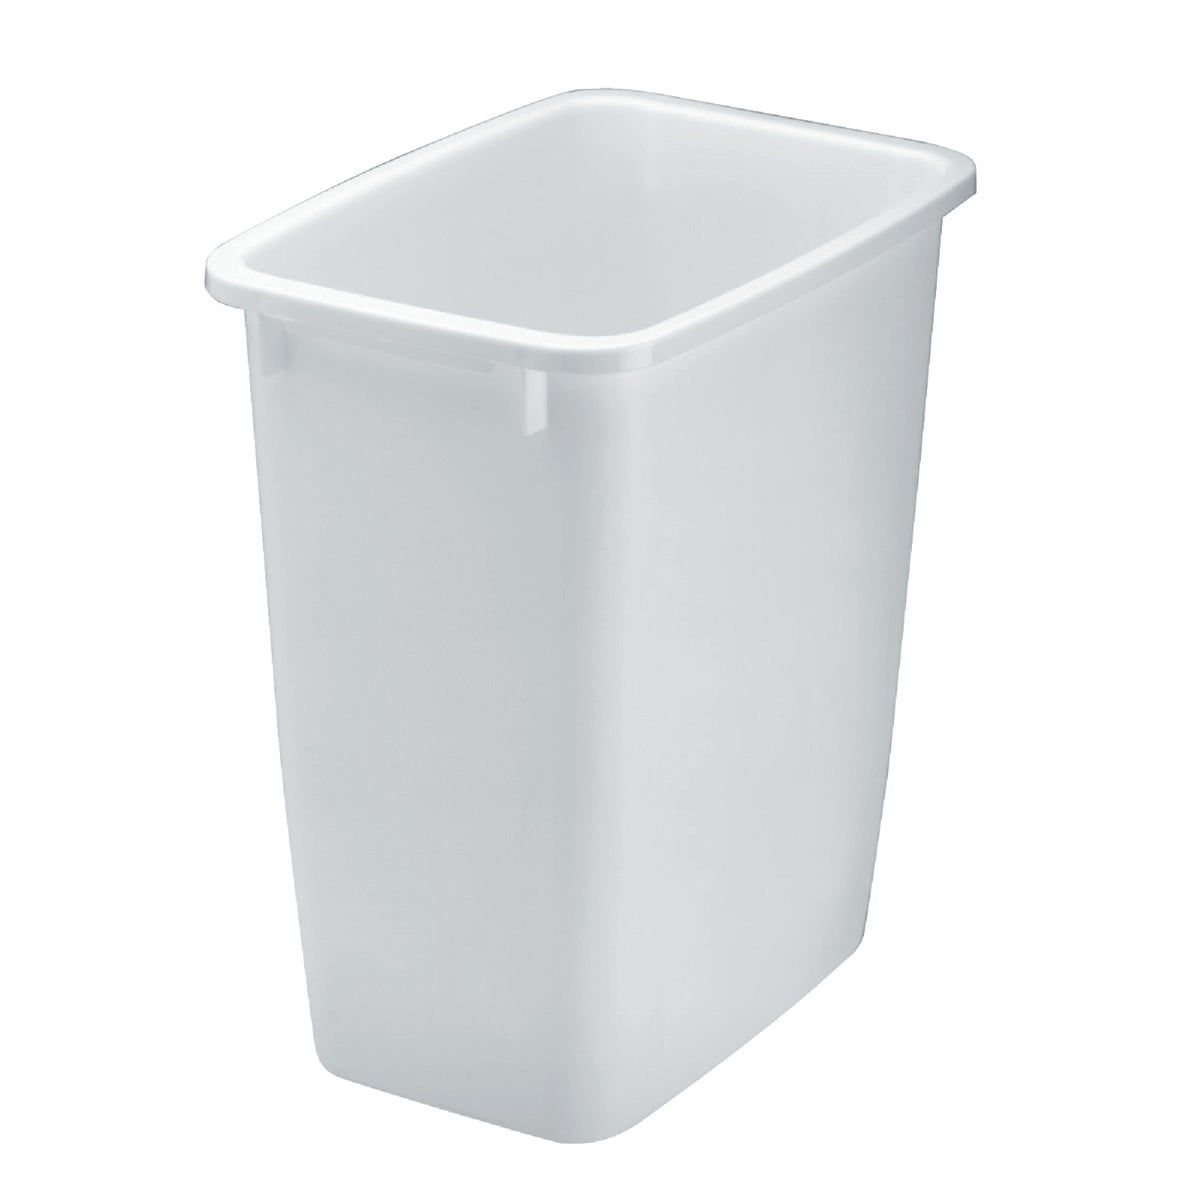 21QT WHITE WASTEBASKET - 280500-WHT by Rubbermaid Home